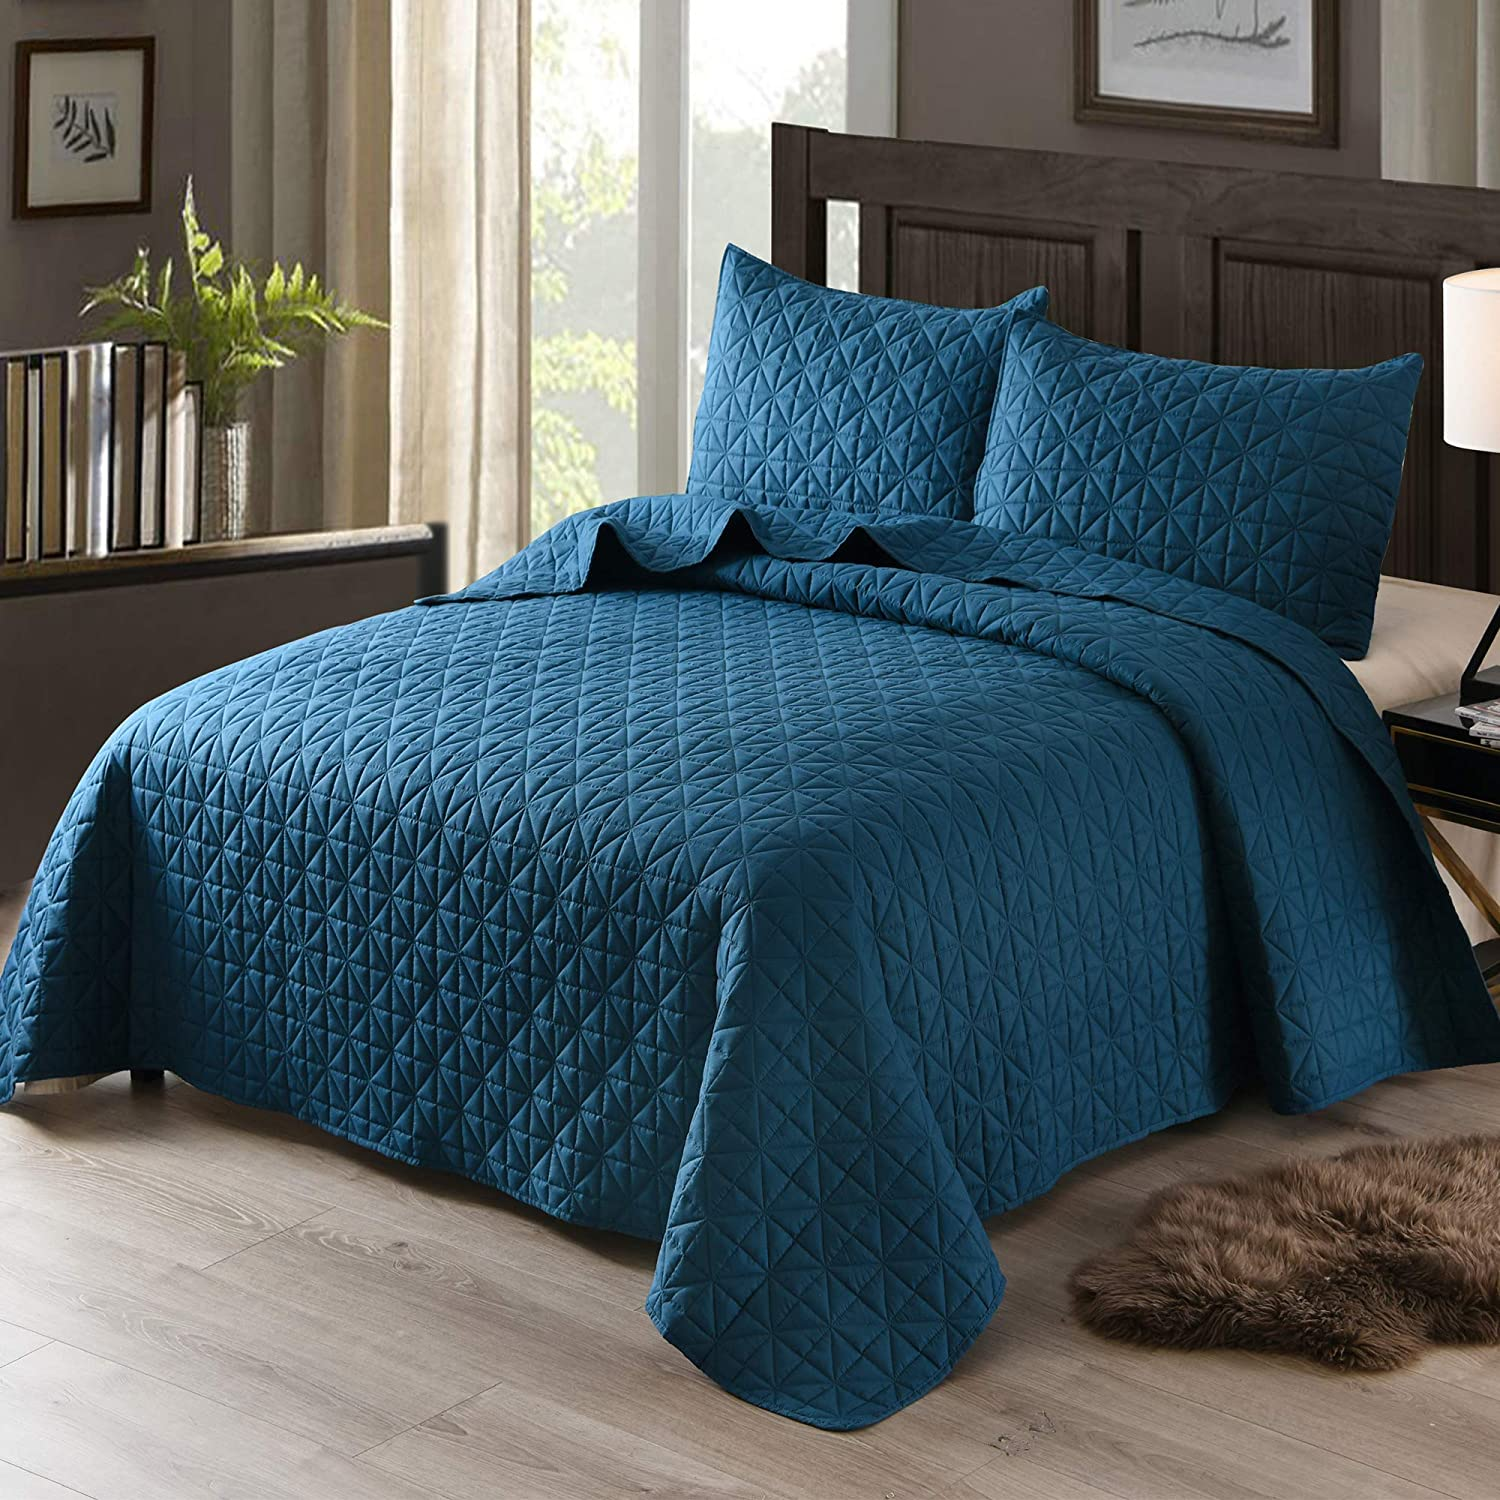 Exclusivo Mezcla 2-Piece Twin Size Quilt Set with One Pillow Sham, as Bedspread/Coverlet/Bed Cover(Grid Blue) - Soft, Lightweight, Reversible and Hypoallergenic